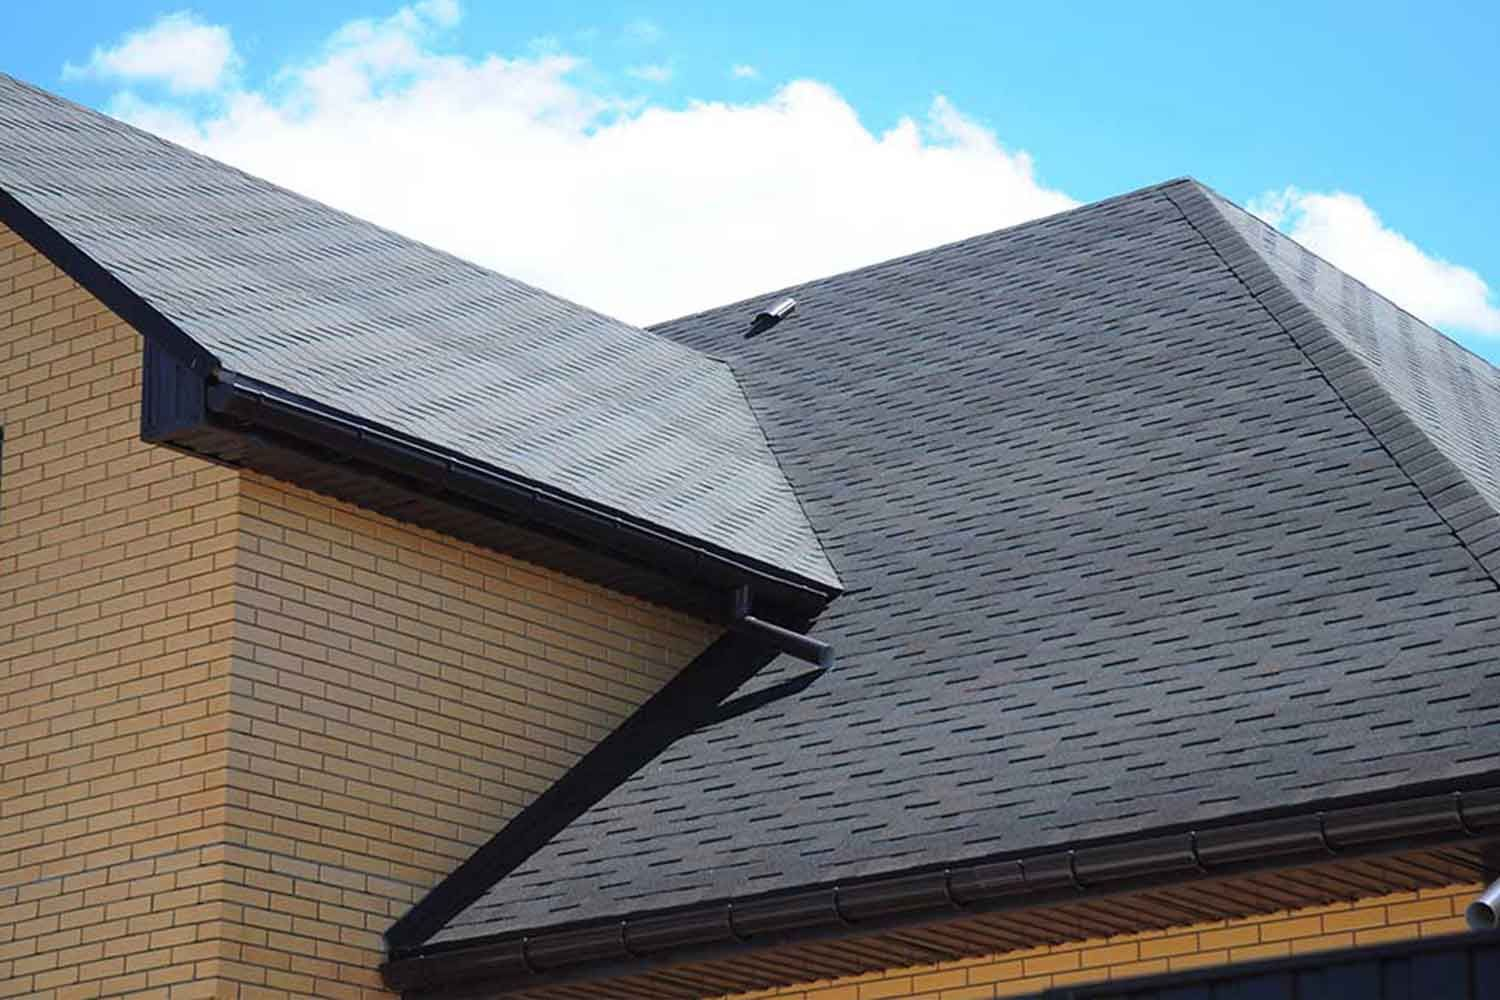 Roofing Installation In Hawthorne Ca In 2020 Best Roofing Company Roofing Contractors Cool Roof